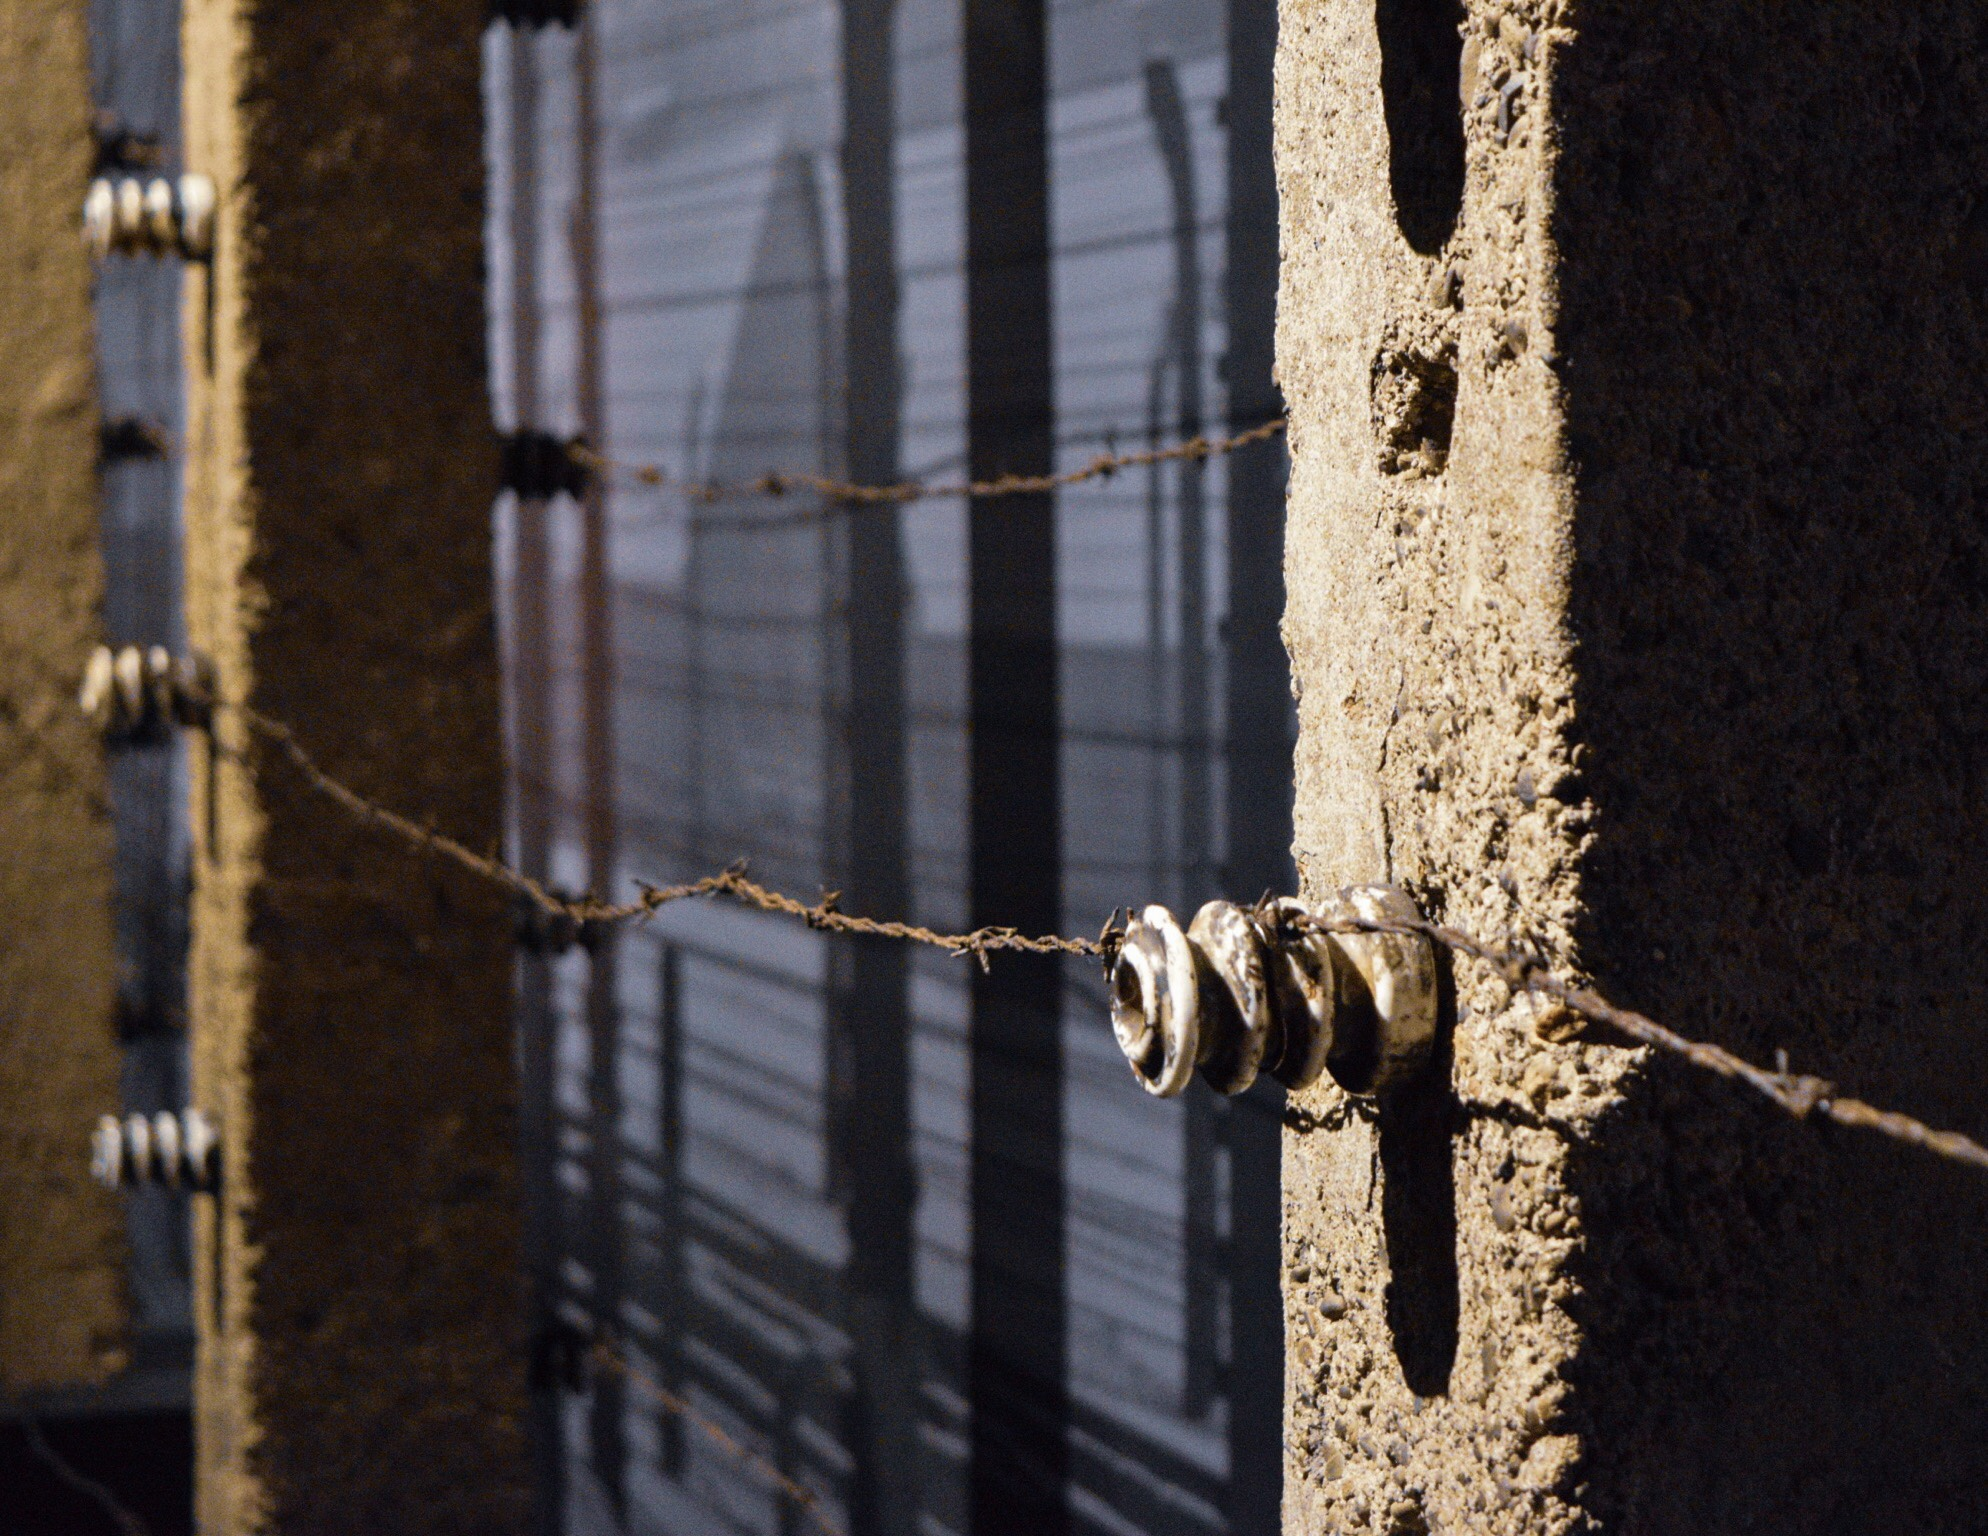 Posts and barbed wire from Auschwitz